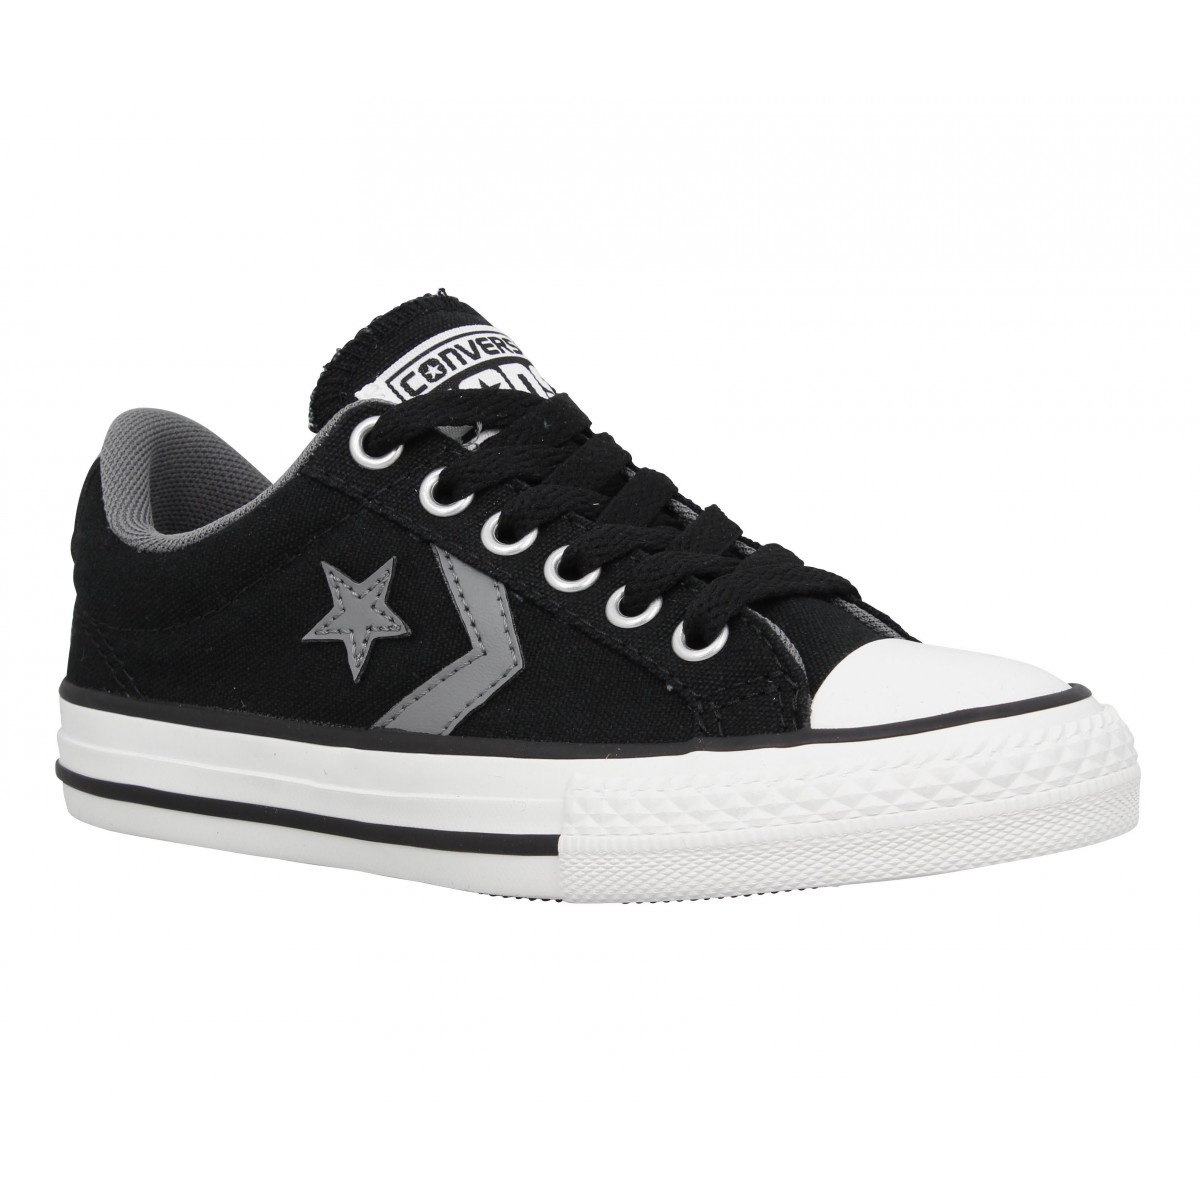 Baskets CONVERSE Star Player toile Enfant Noir + Gris